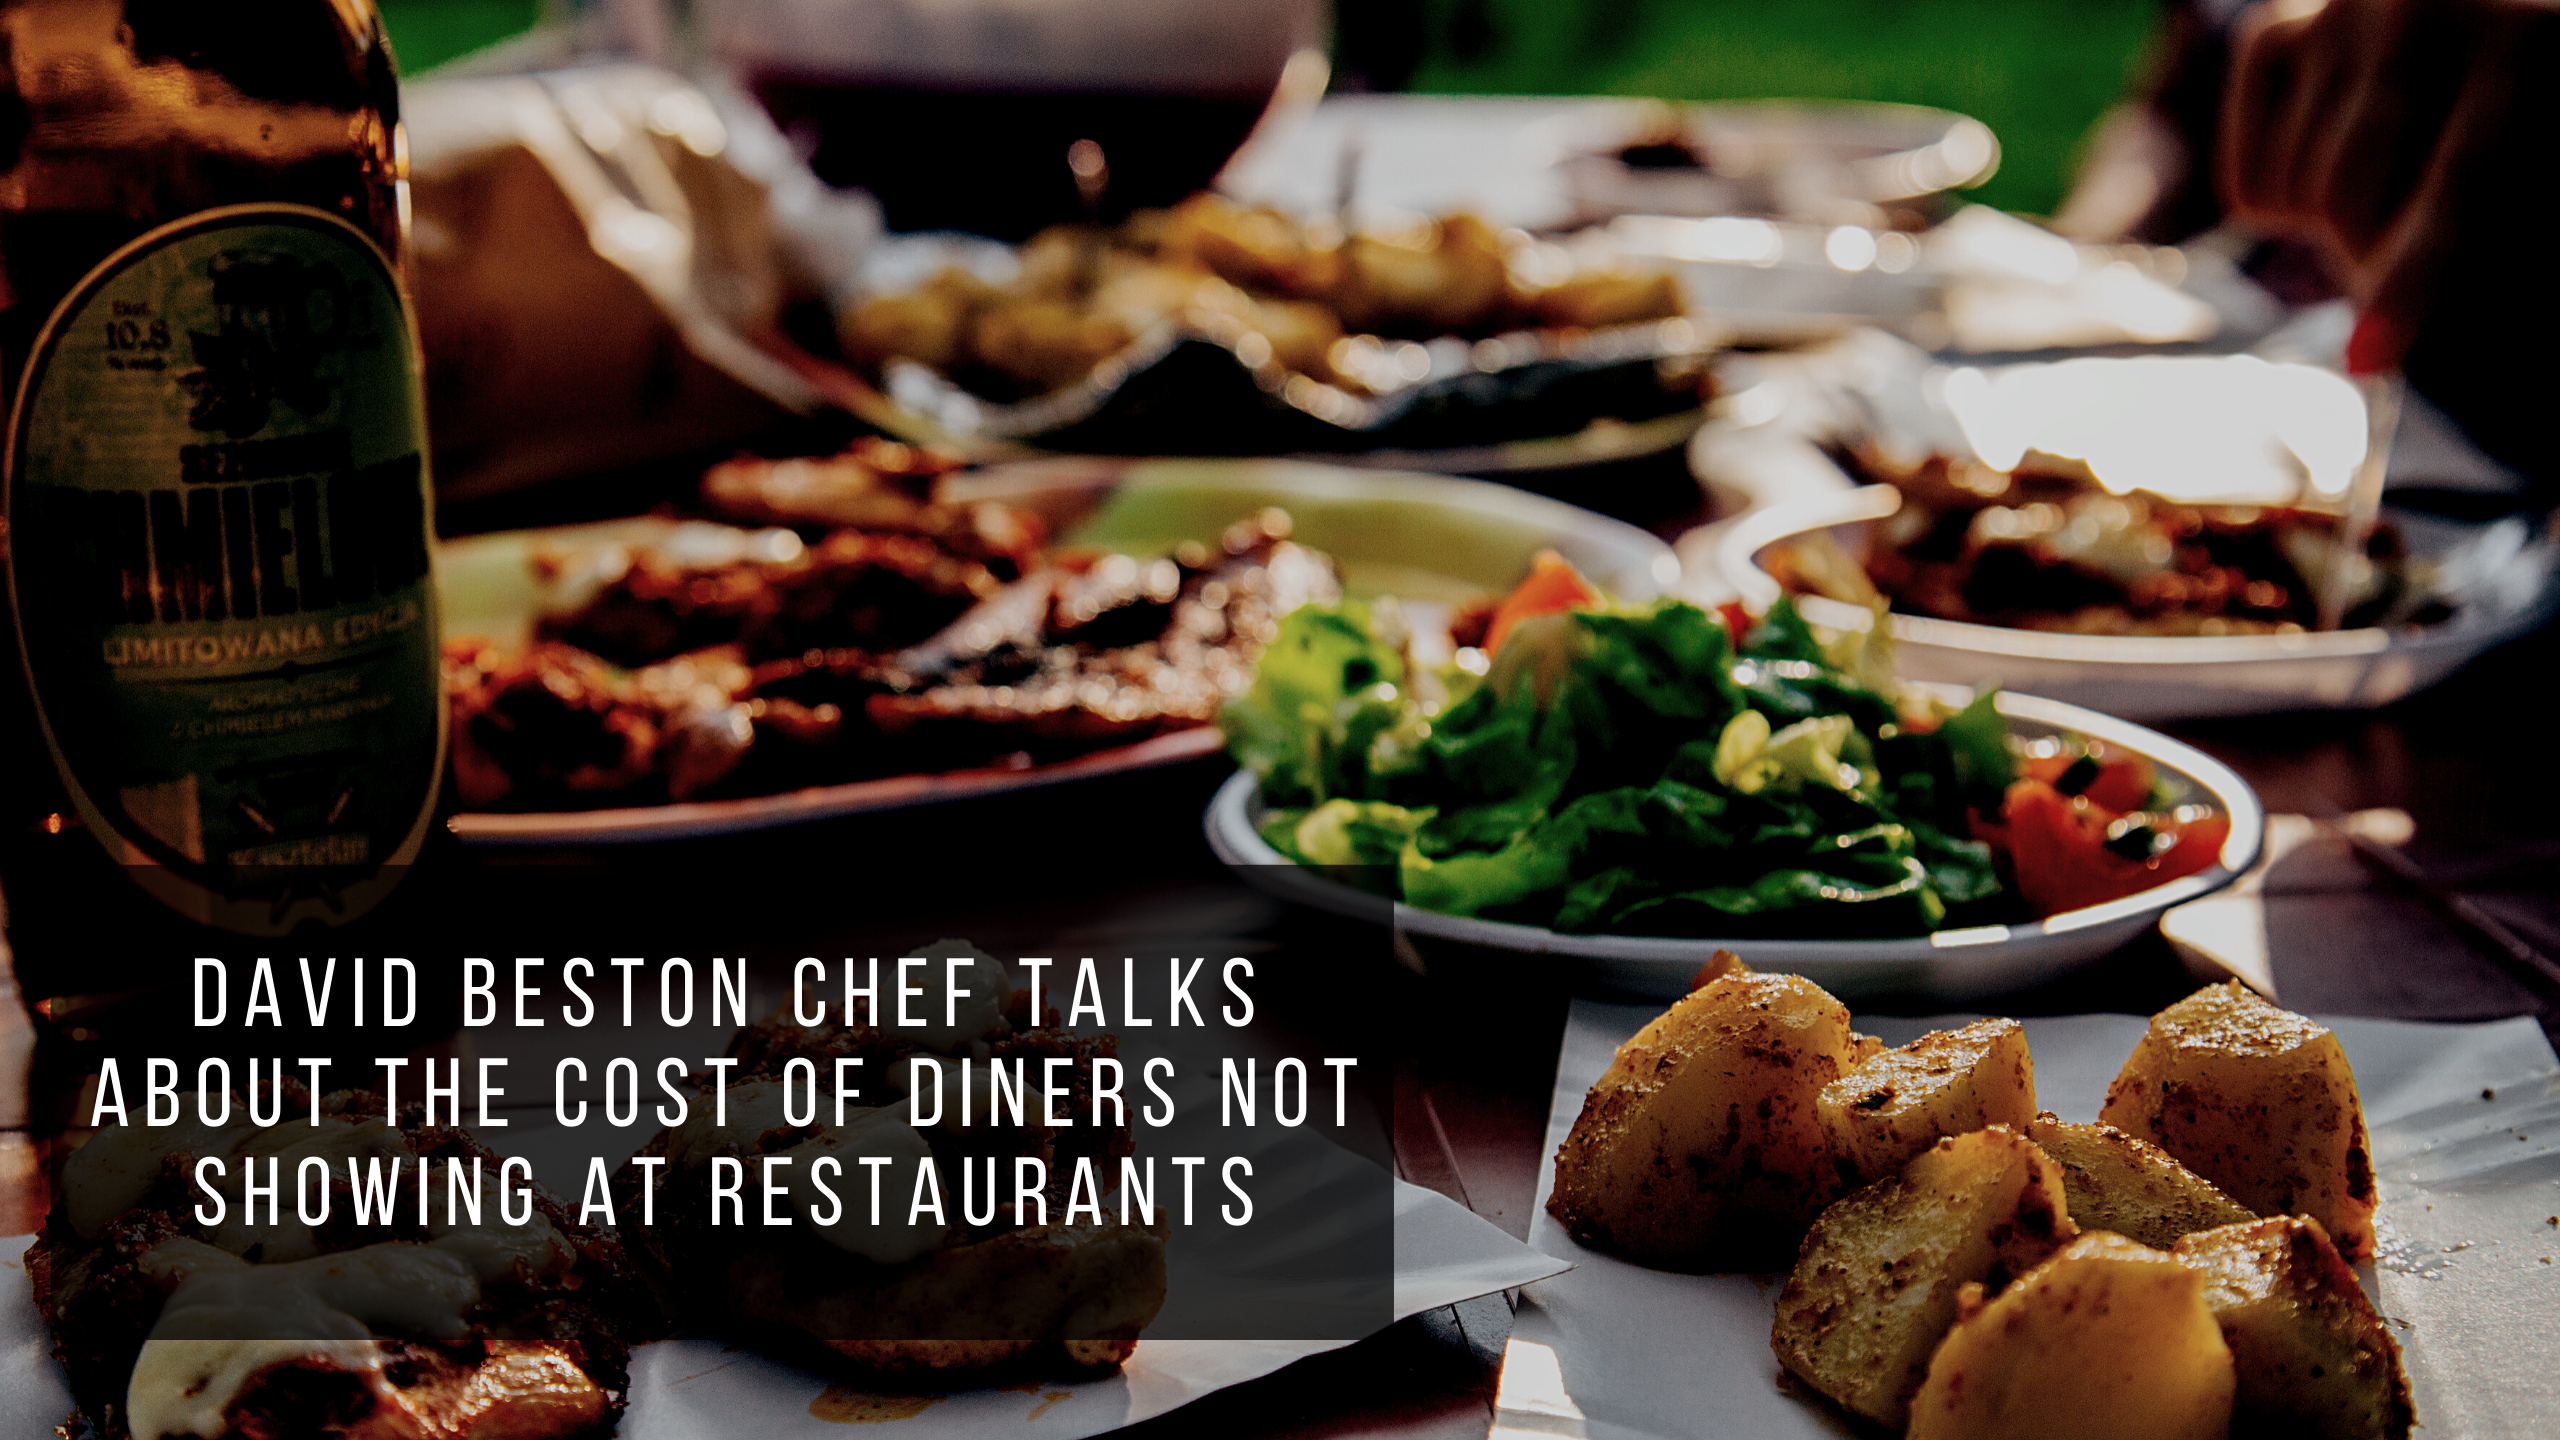 David Beston Chef Talks about the Cost of Diners not Showing at Restaurants